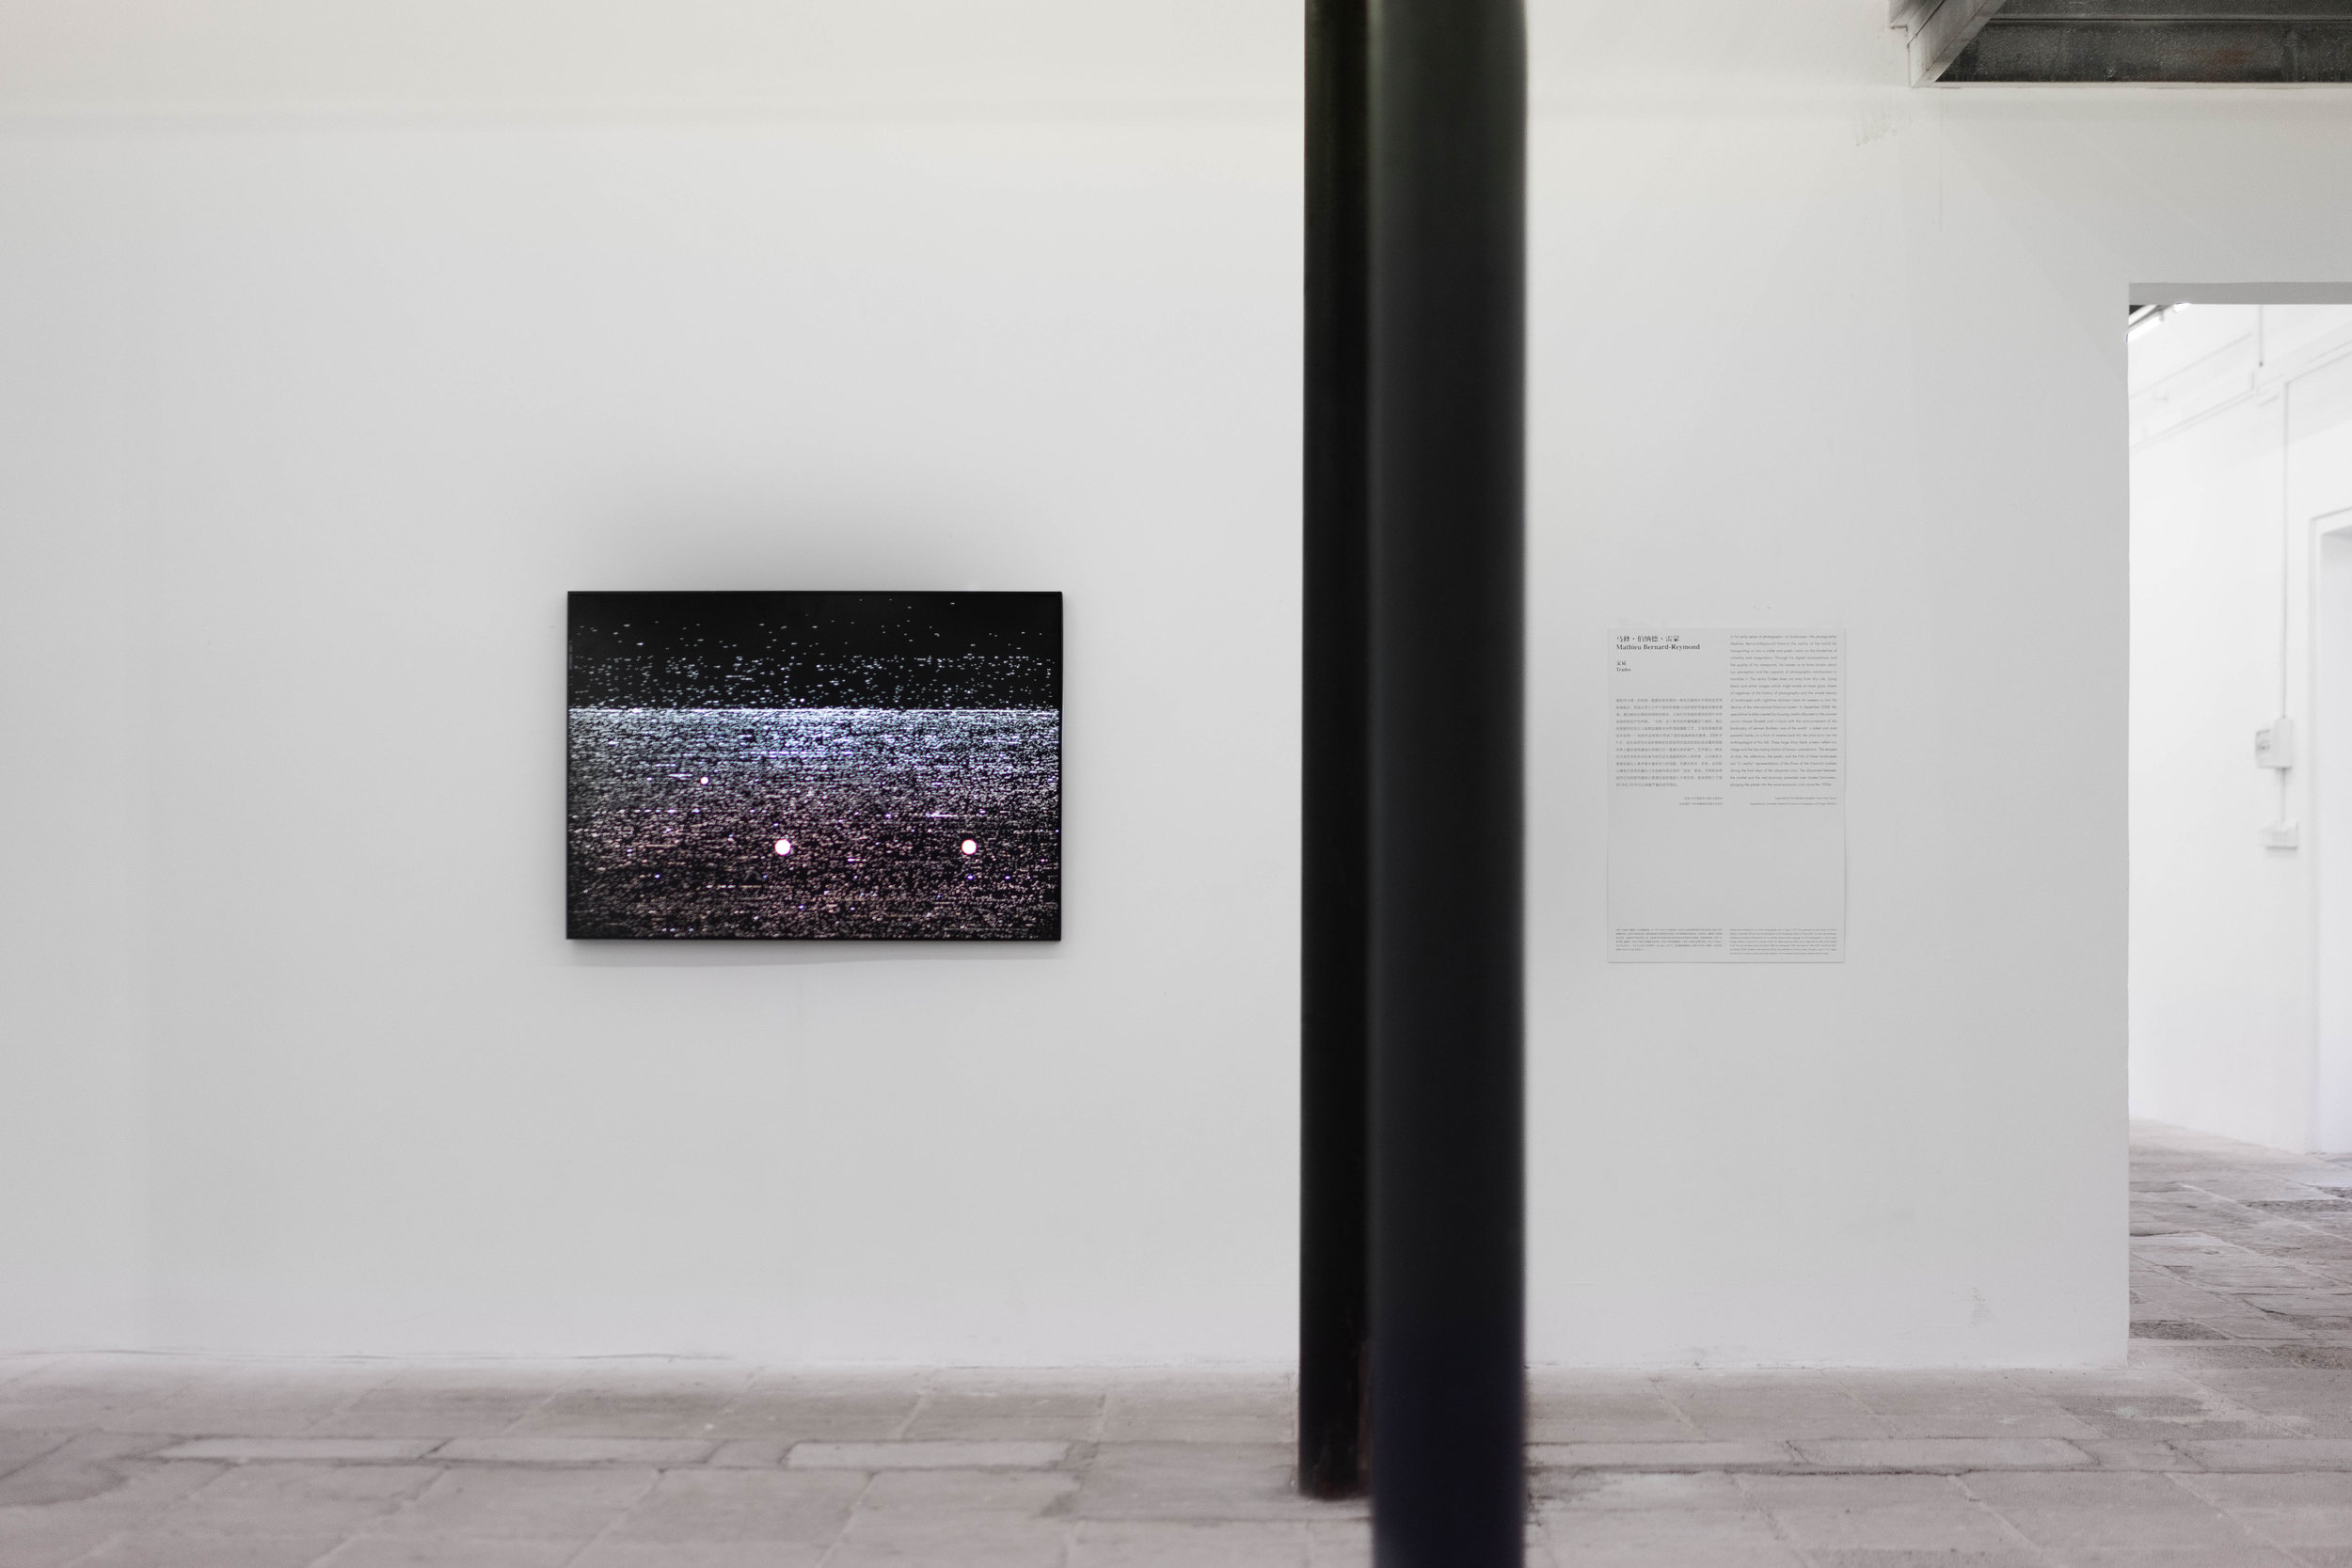 Exhibition view, LianZhouFoto festival 2018, LianZhou, China